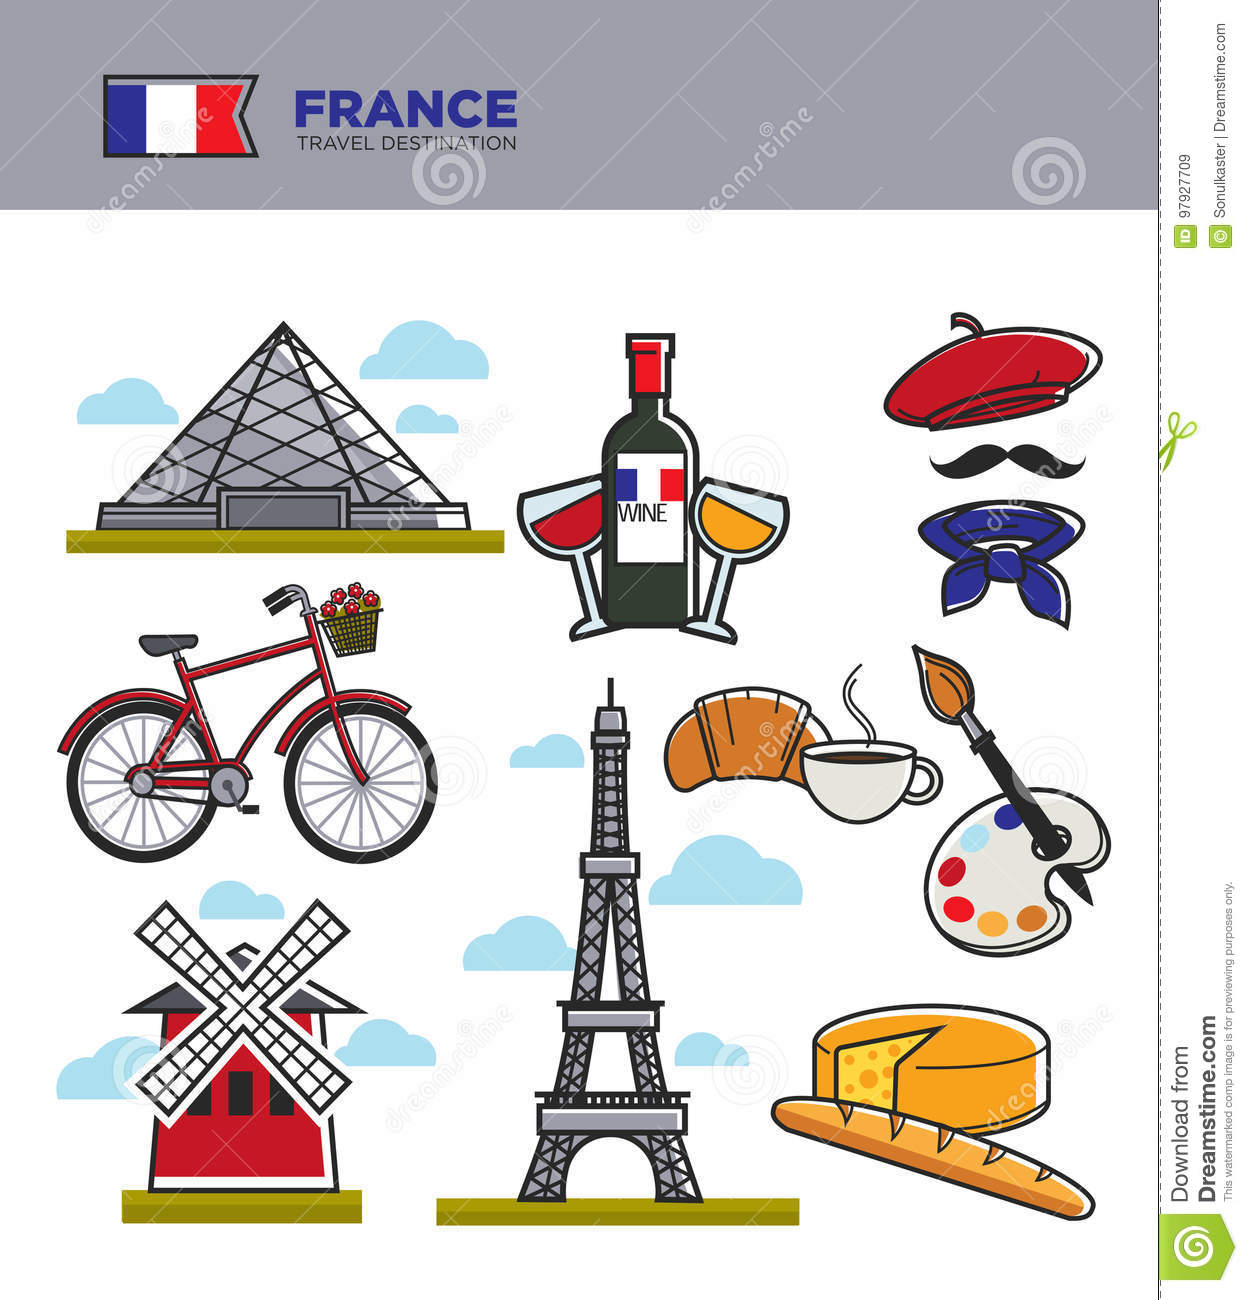 France Travel Tourism Symbols And Famous French Culture Landmarks